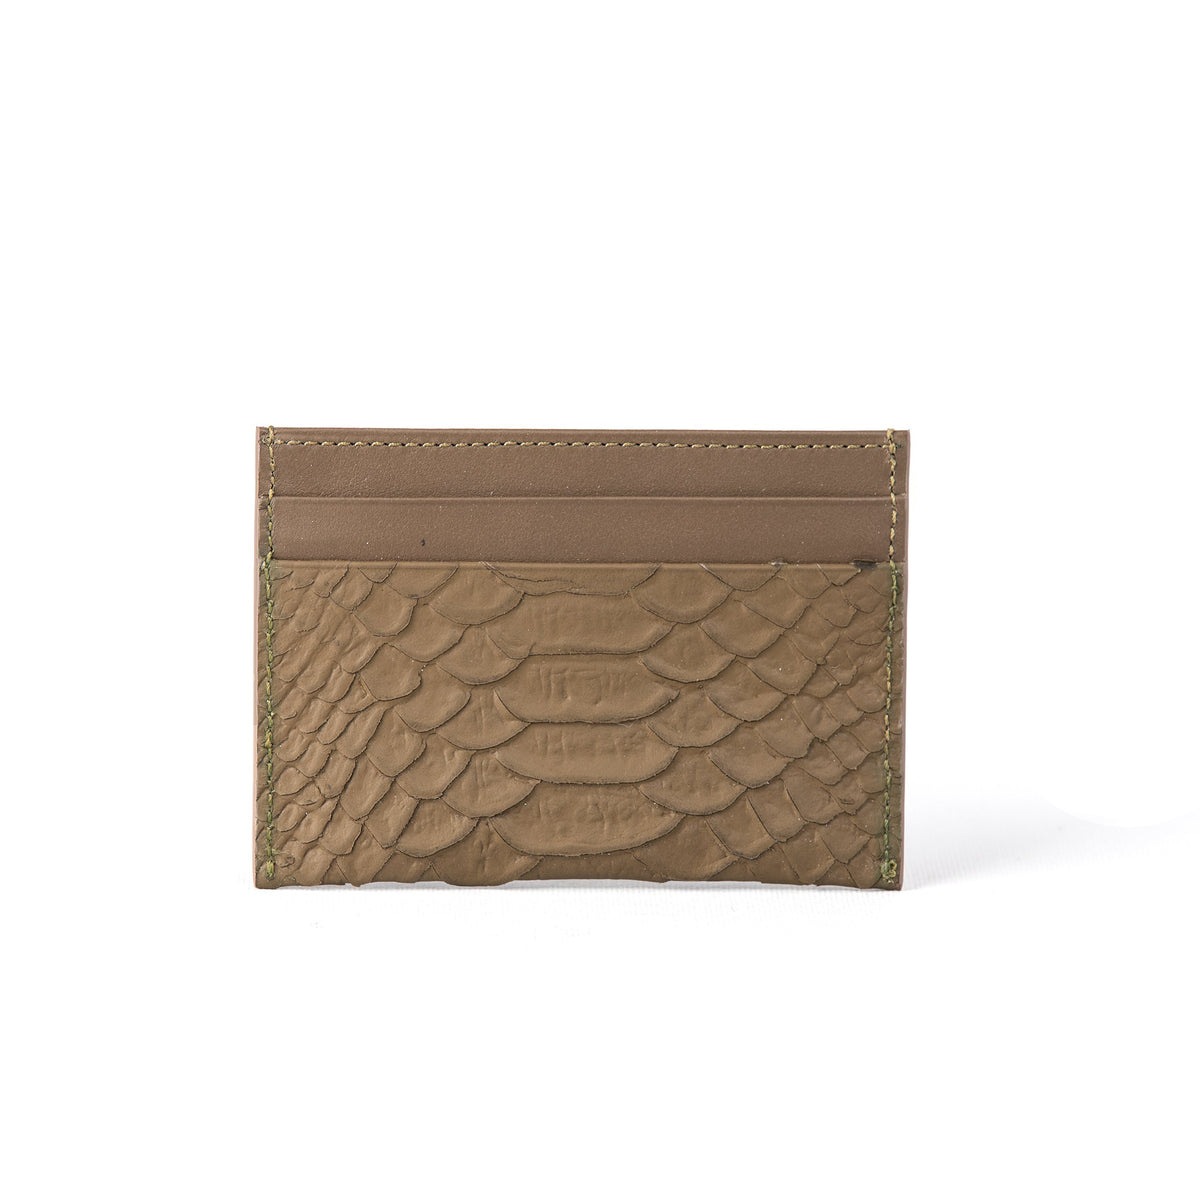 TRUFFLE MATTE PITON CREDIT CARD HOLDER (FP107)